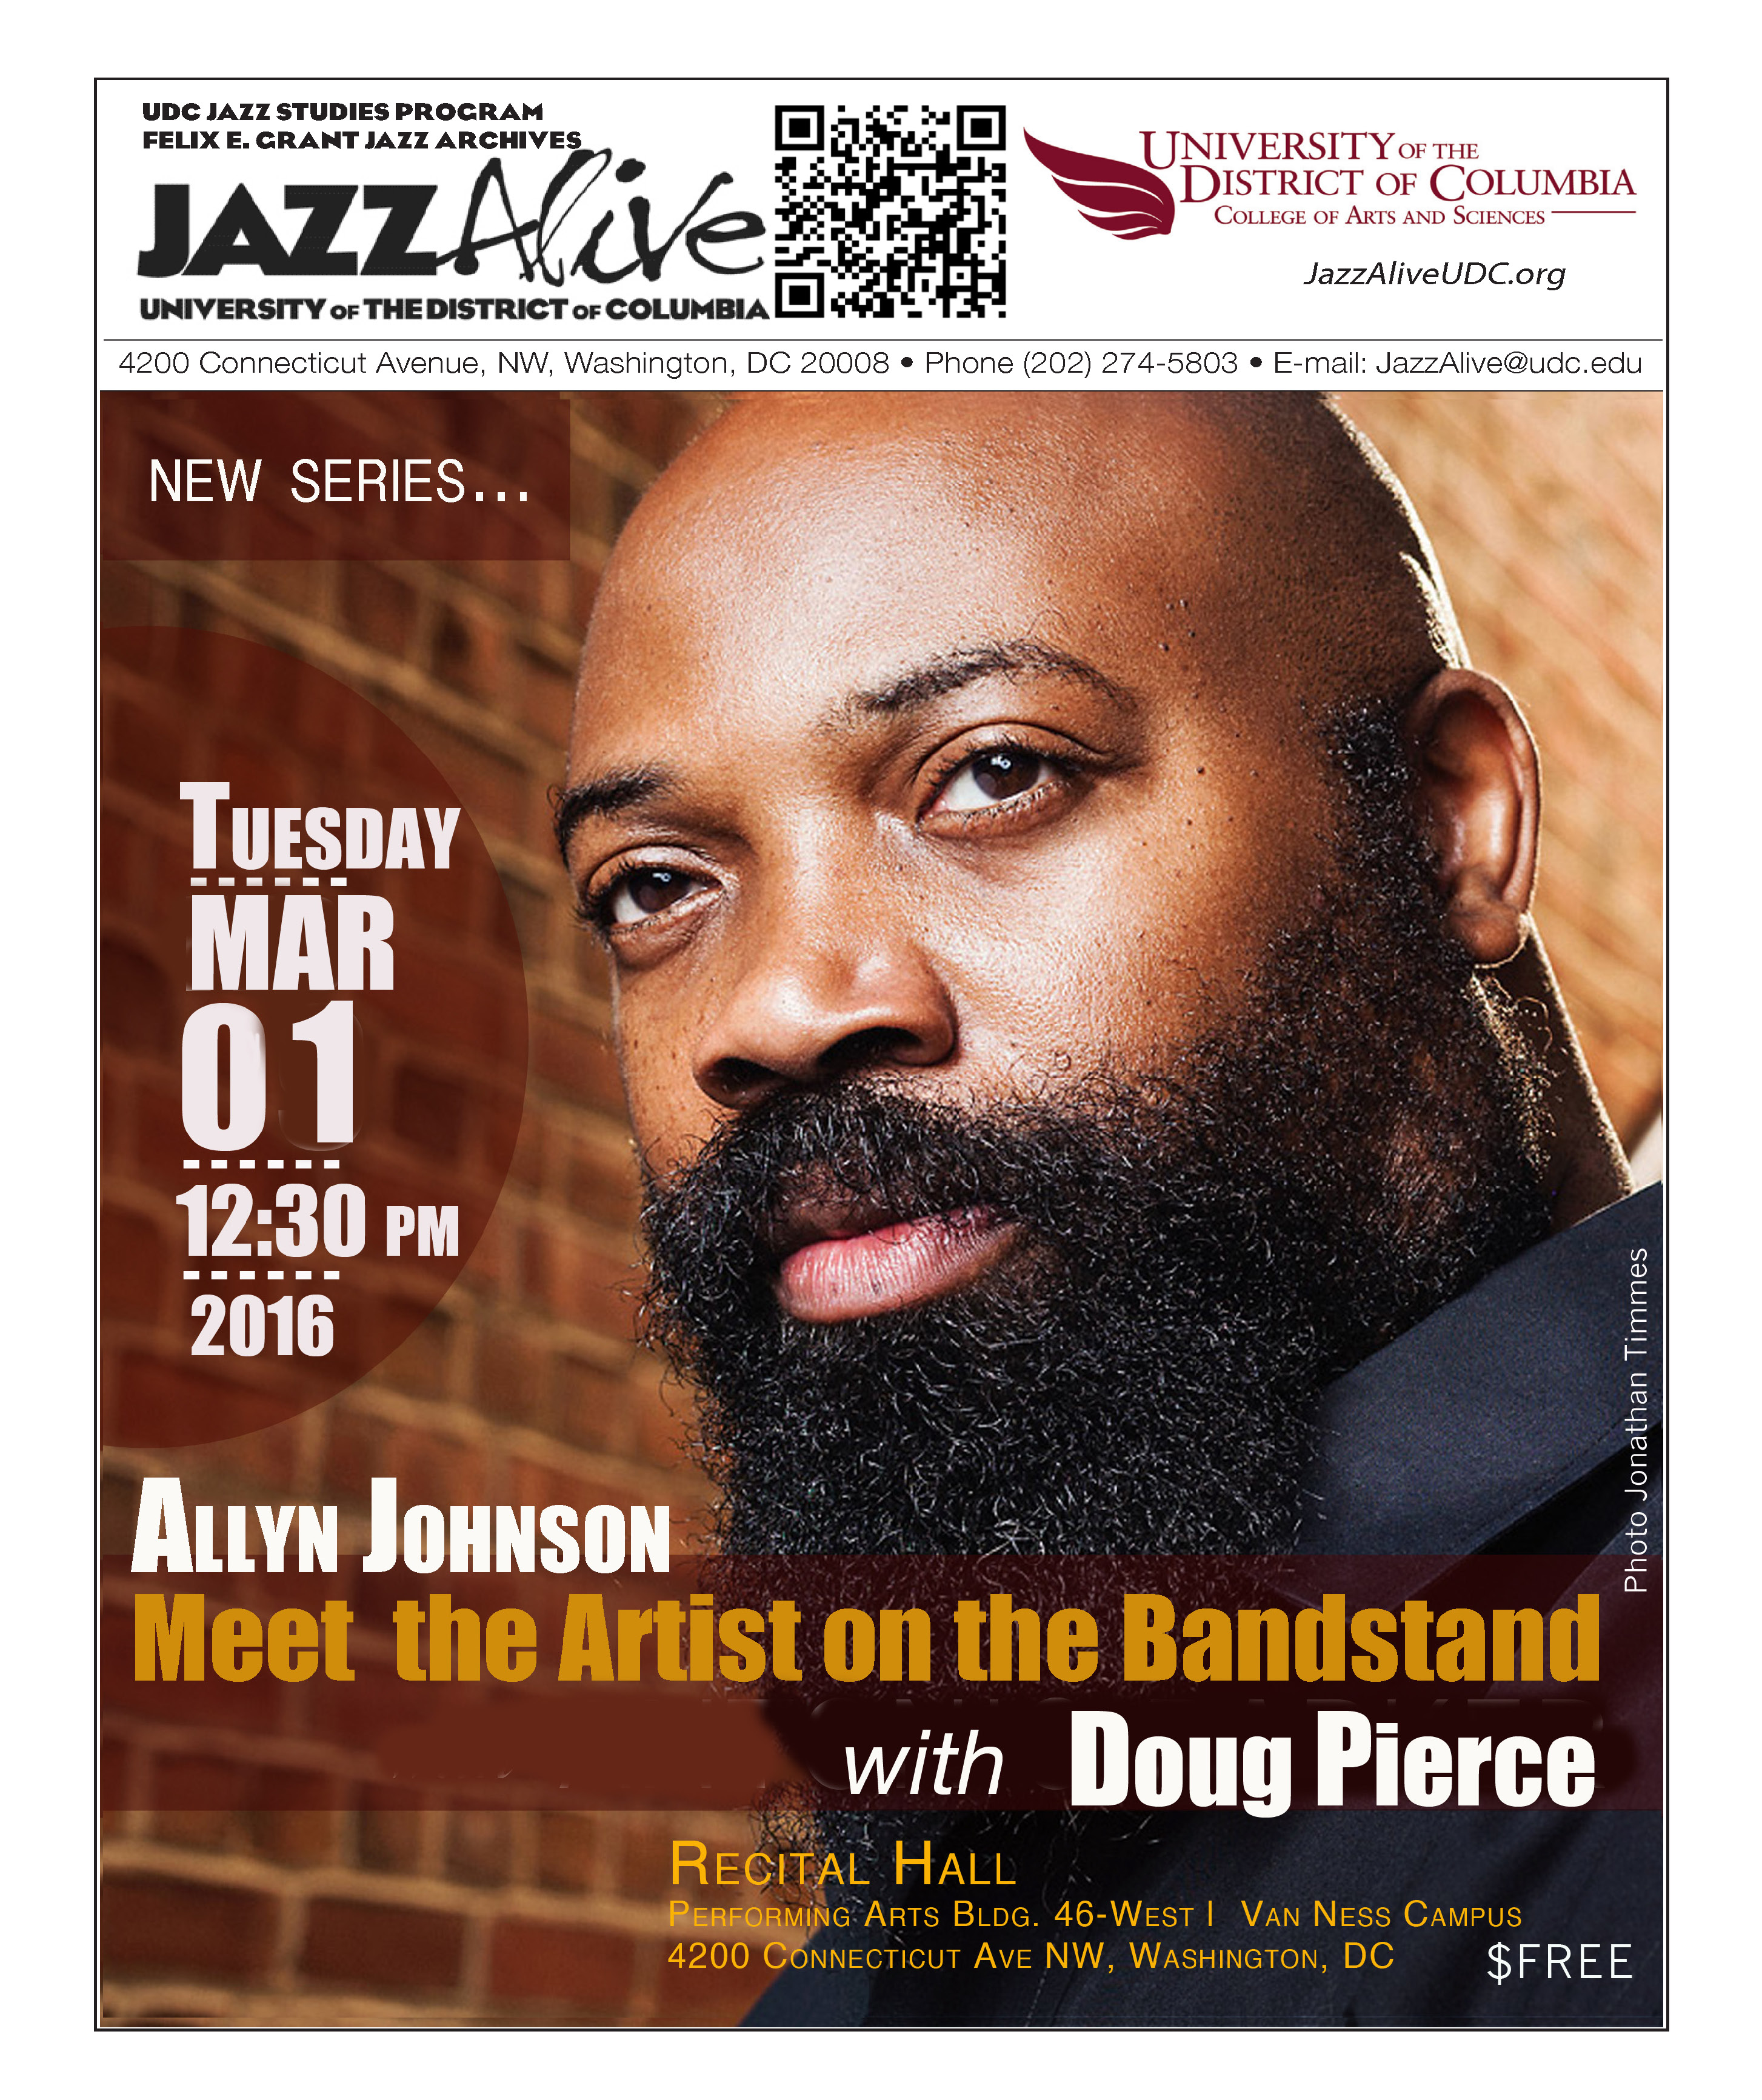 Allyn Johnson And Meet The Artist On The Bandstand with Doug Pierce